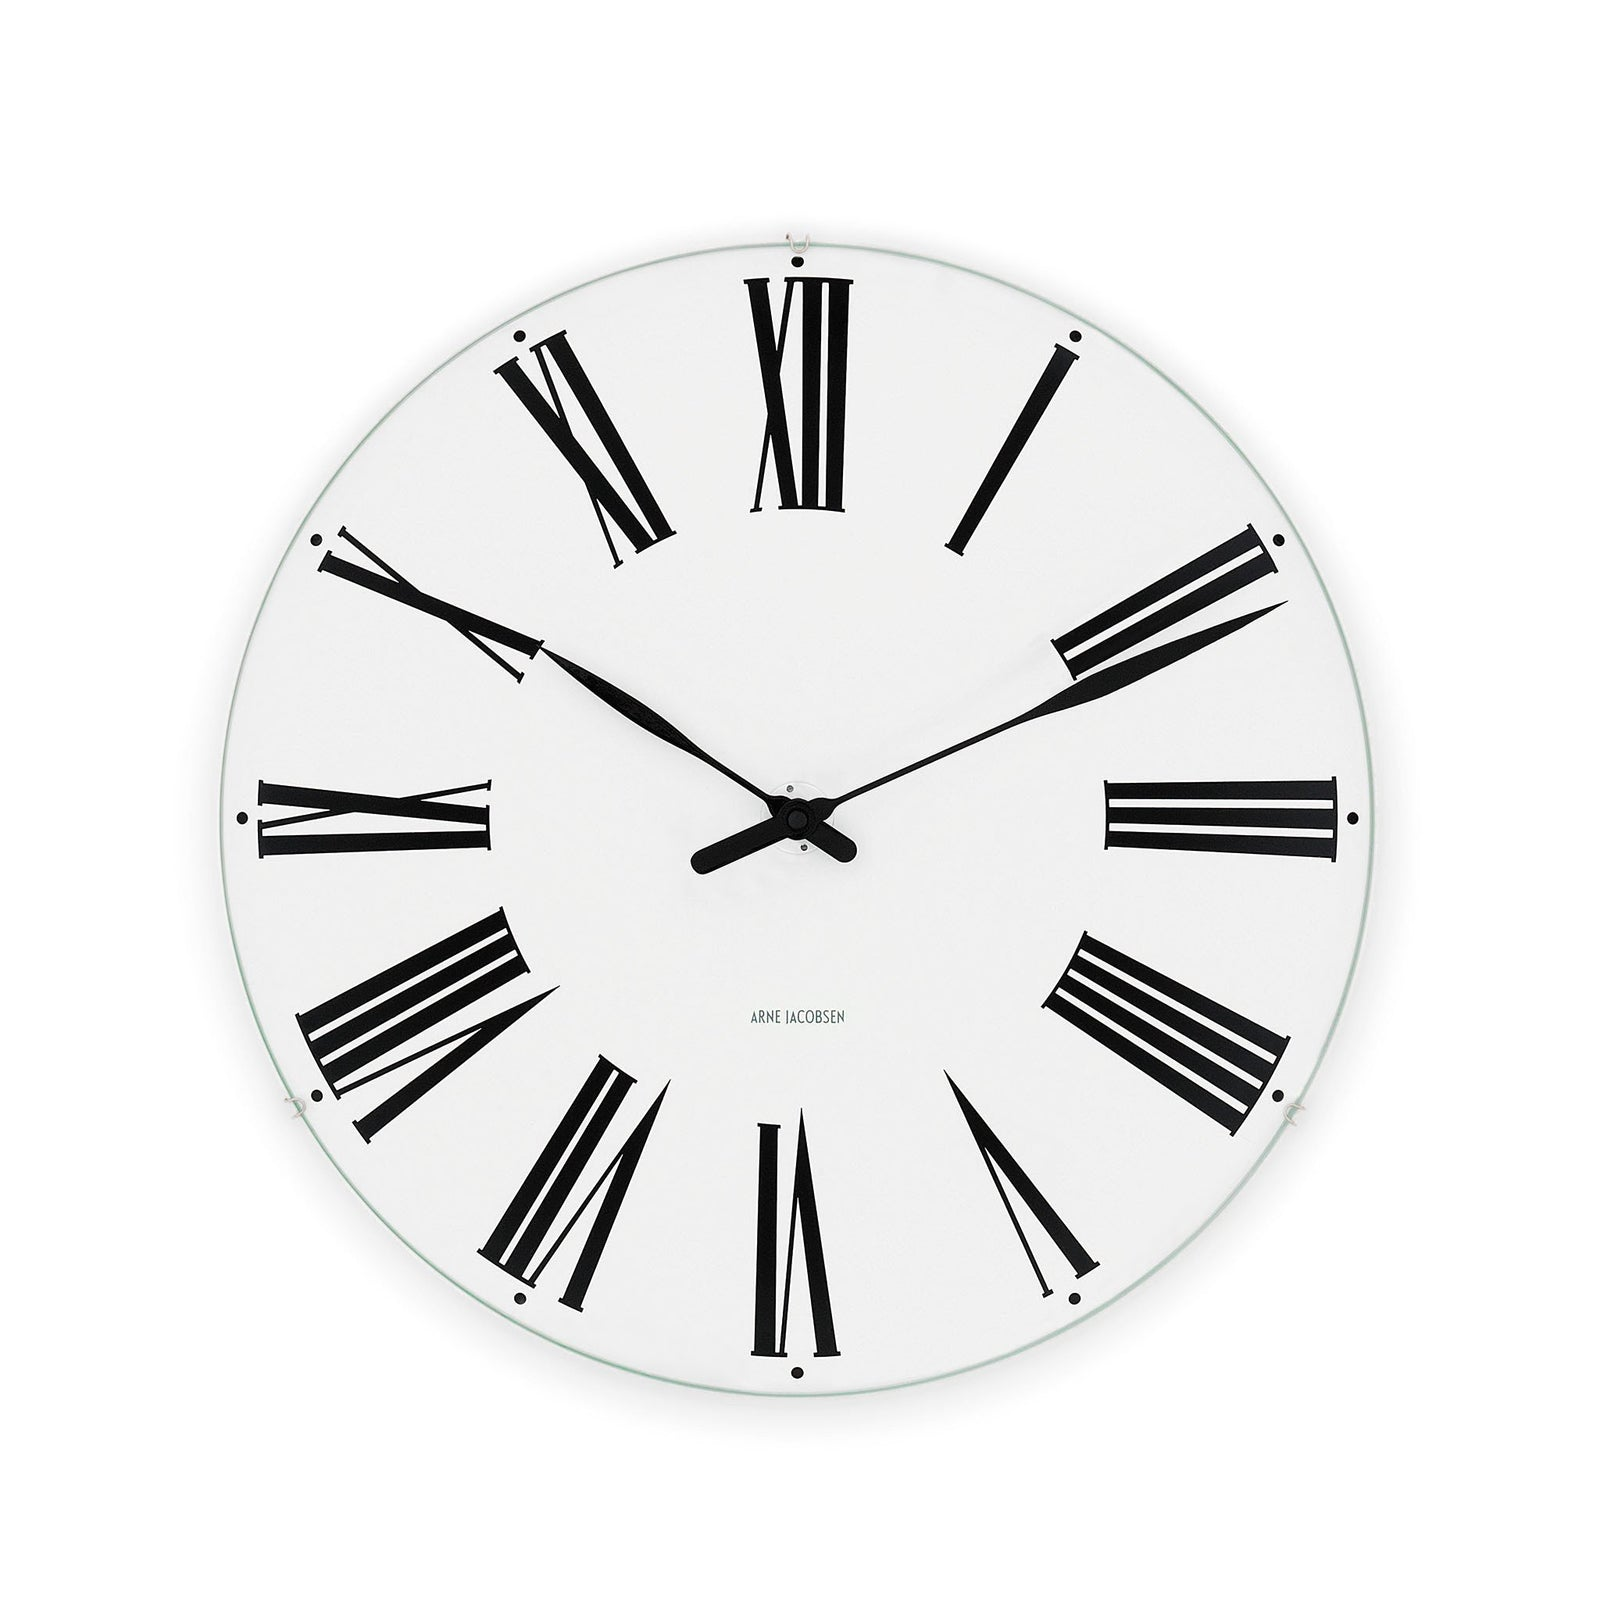 Arne Jacobsen Roman Wall Clock, 6.3""